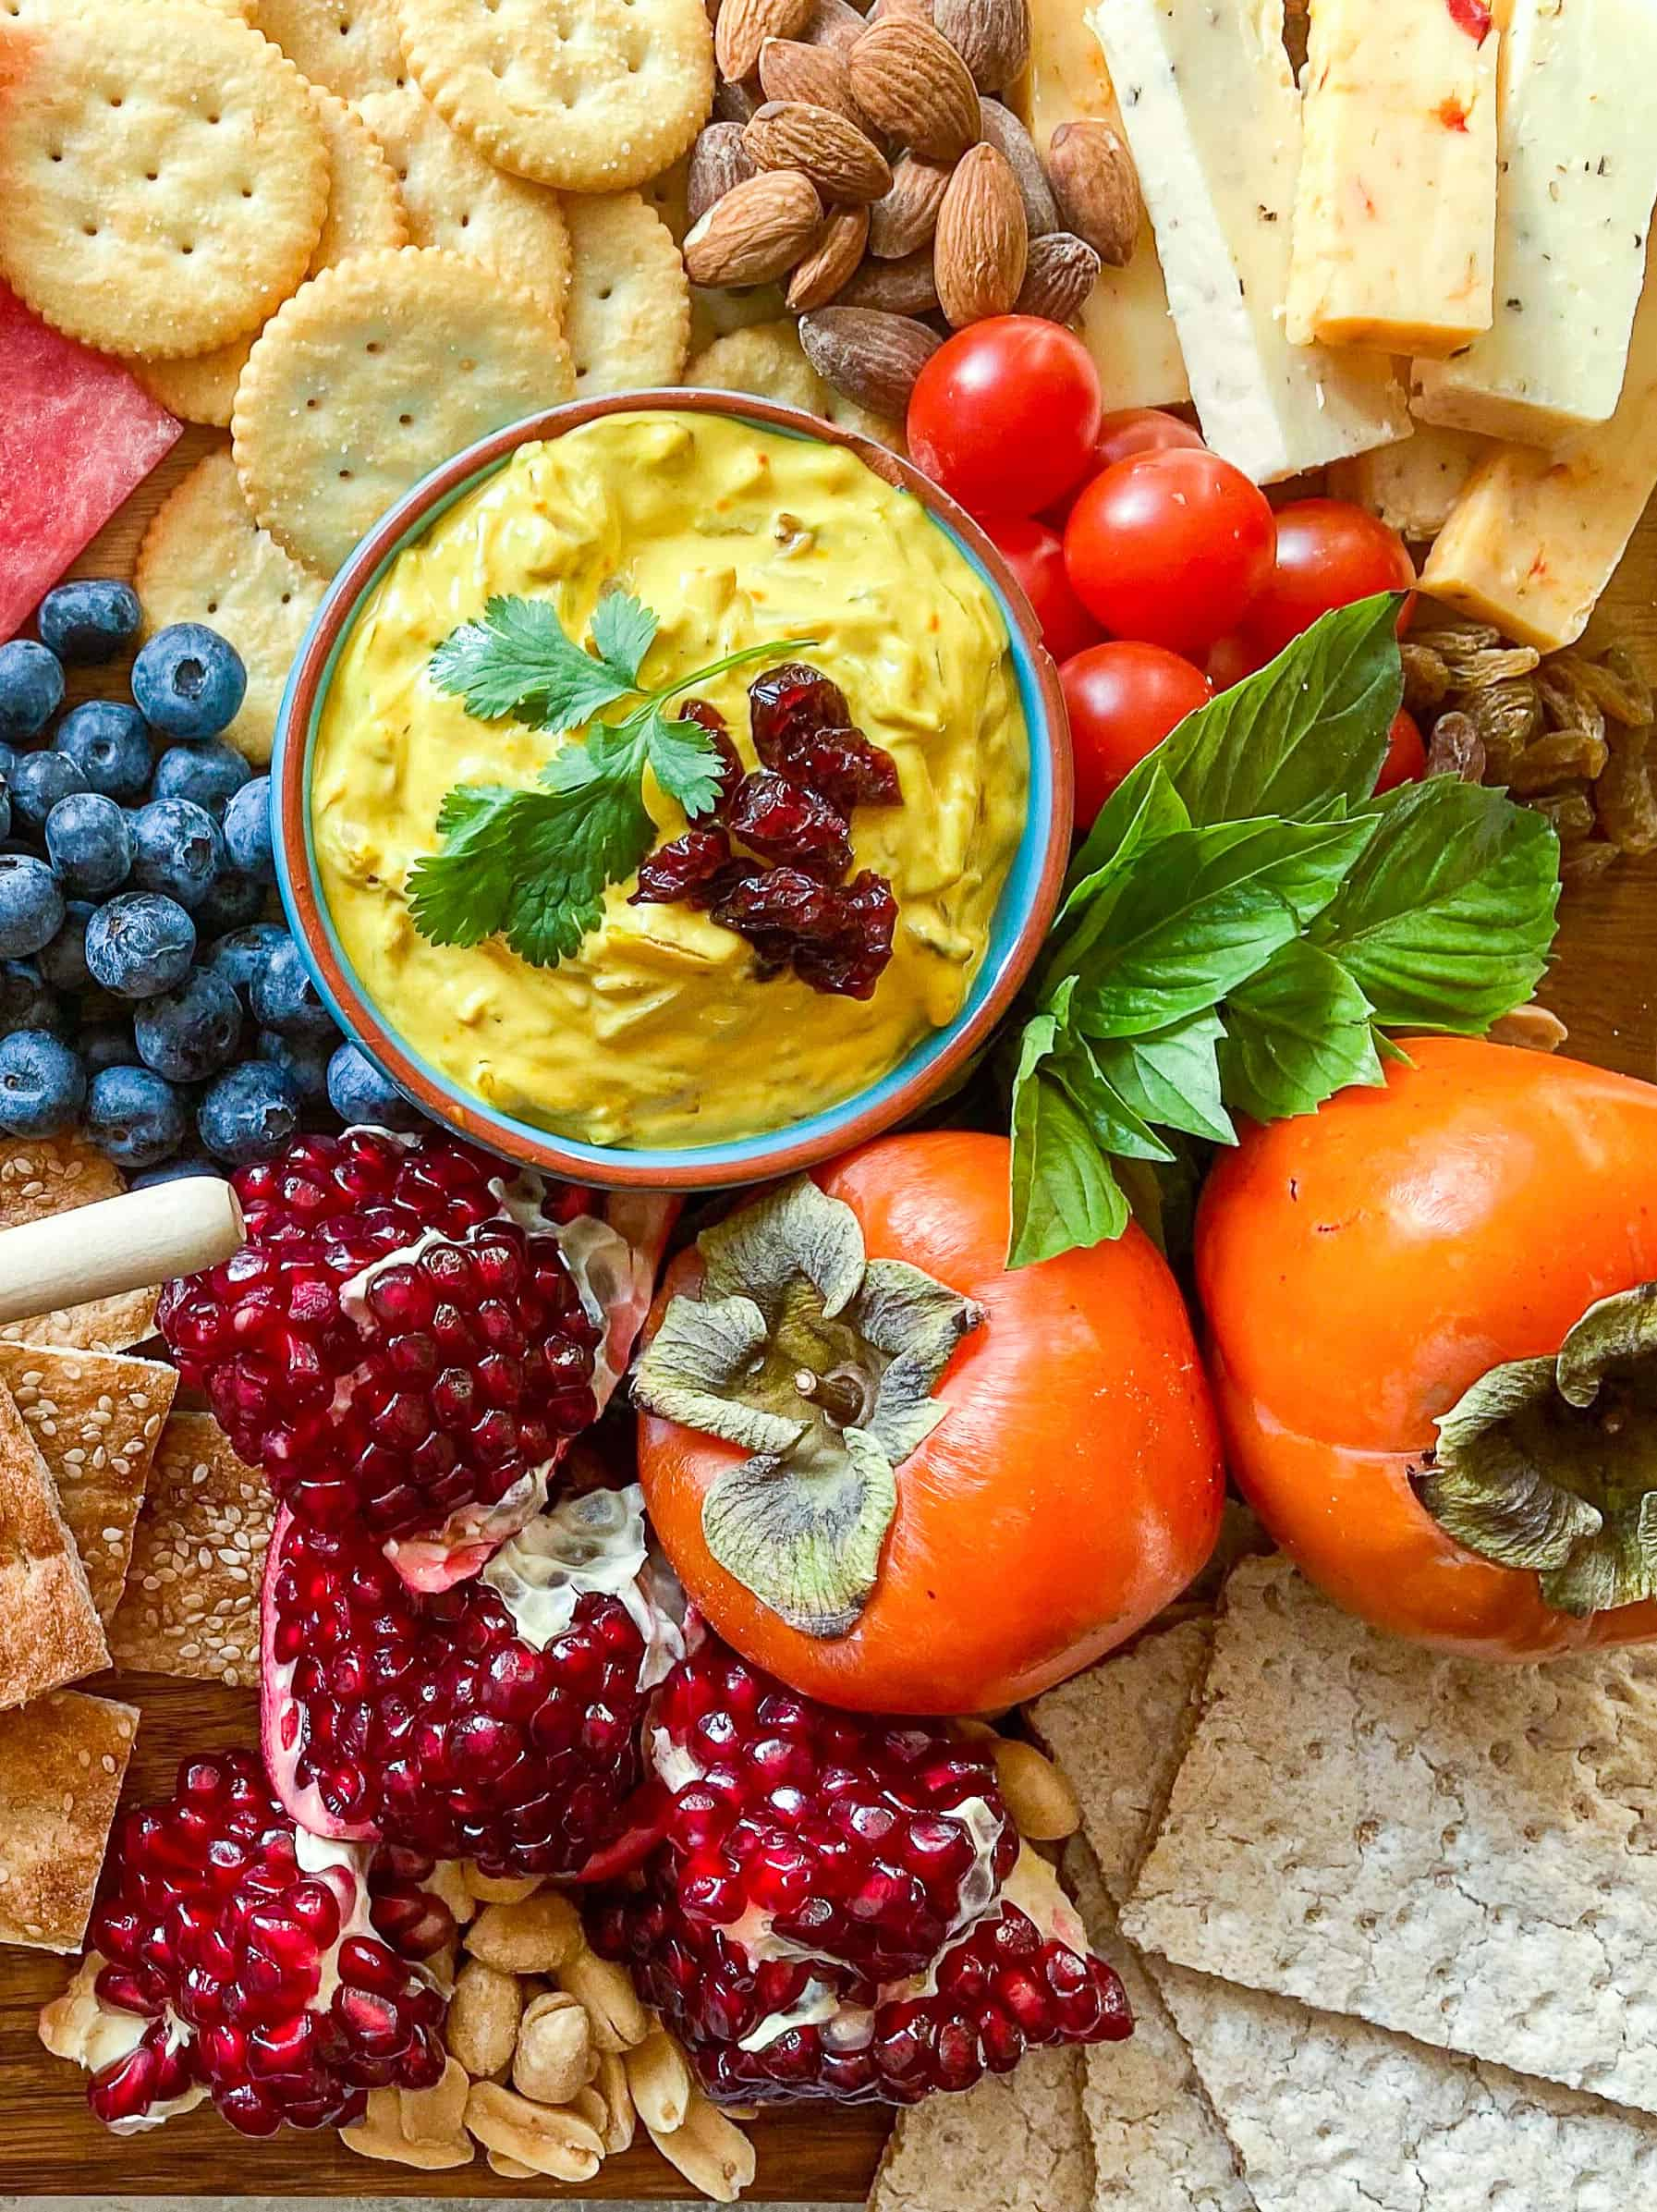 Yalda board also has pomegranates, crackers, cheese and nuts.